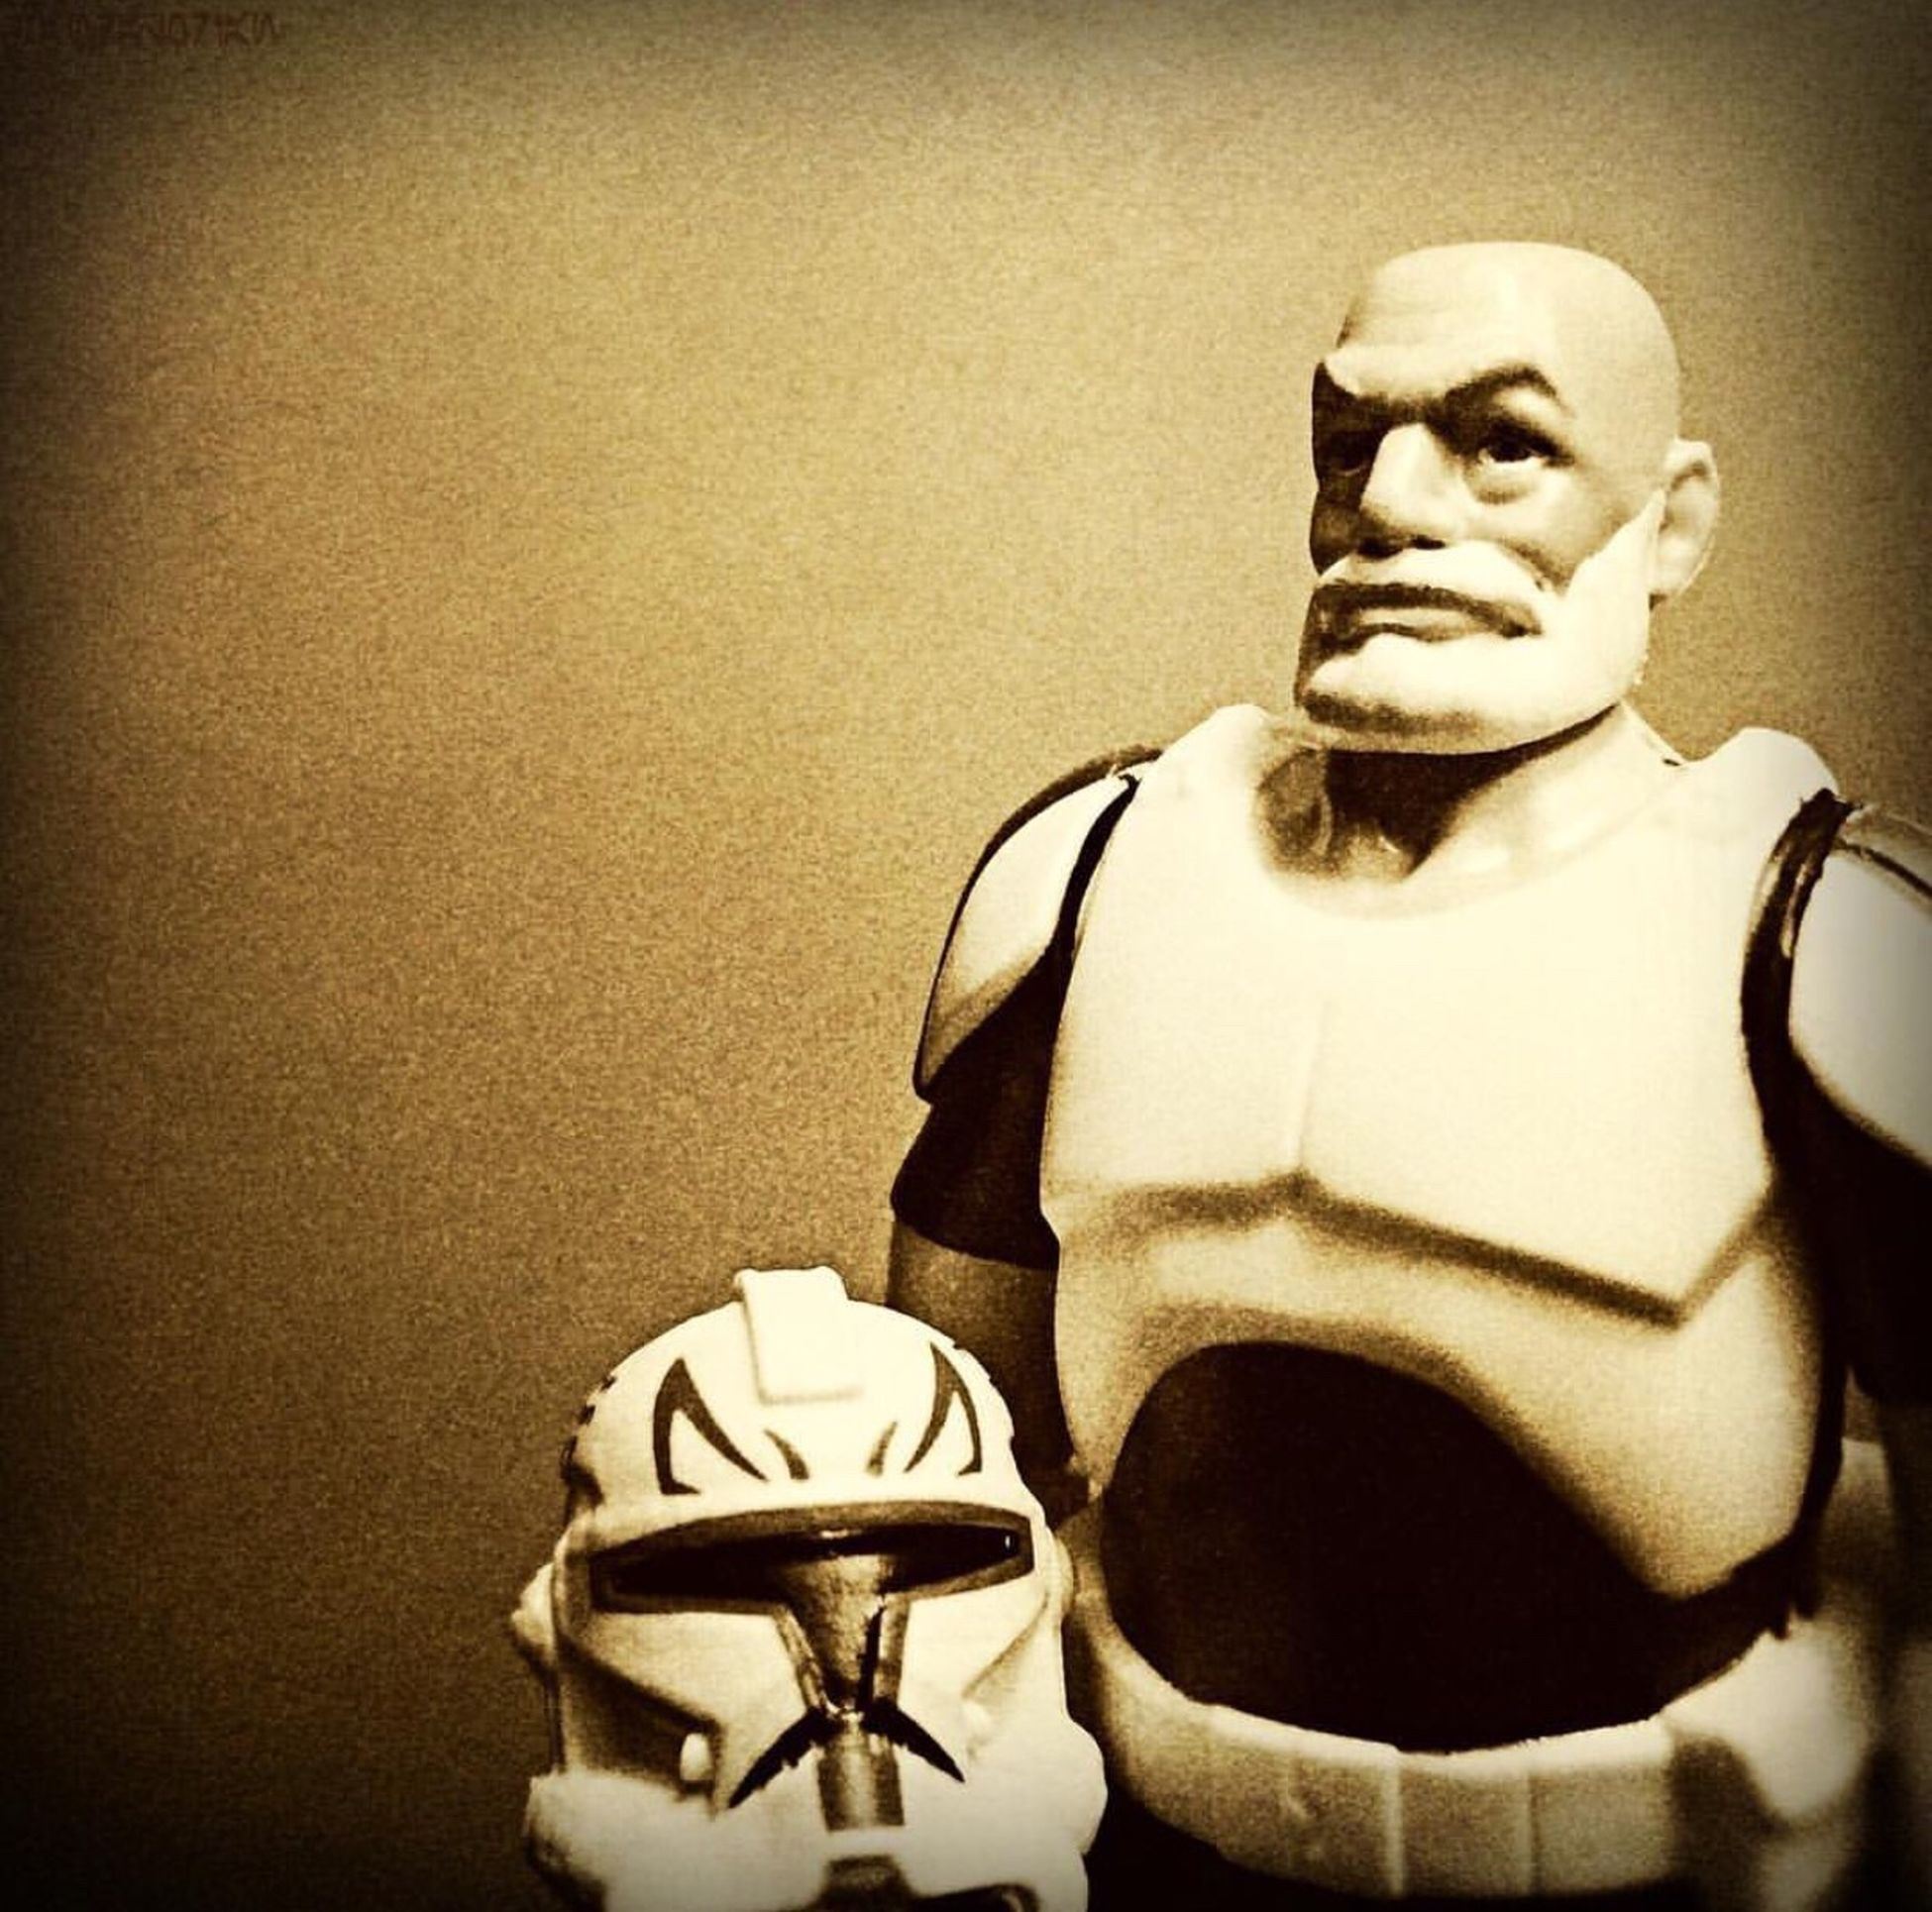 Star Wars Rebels Star Wars Starwarstoys Captain Rex Star Wars Figures Toy Photography Toycommunity